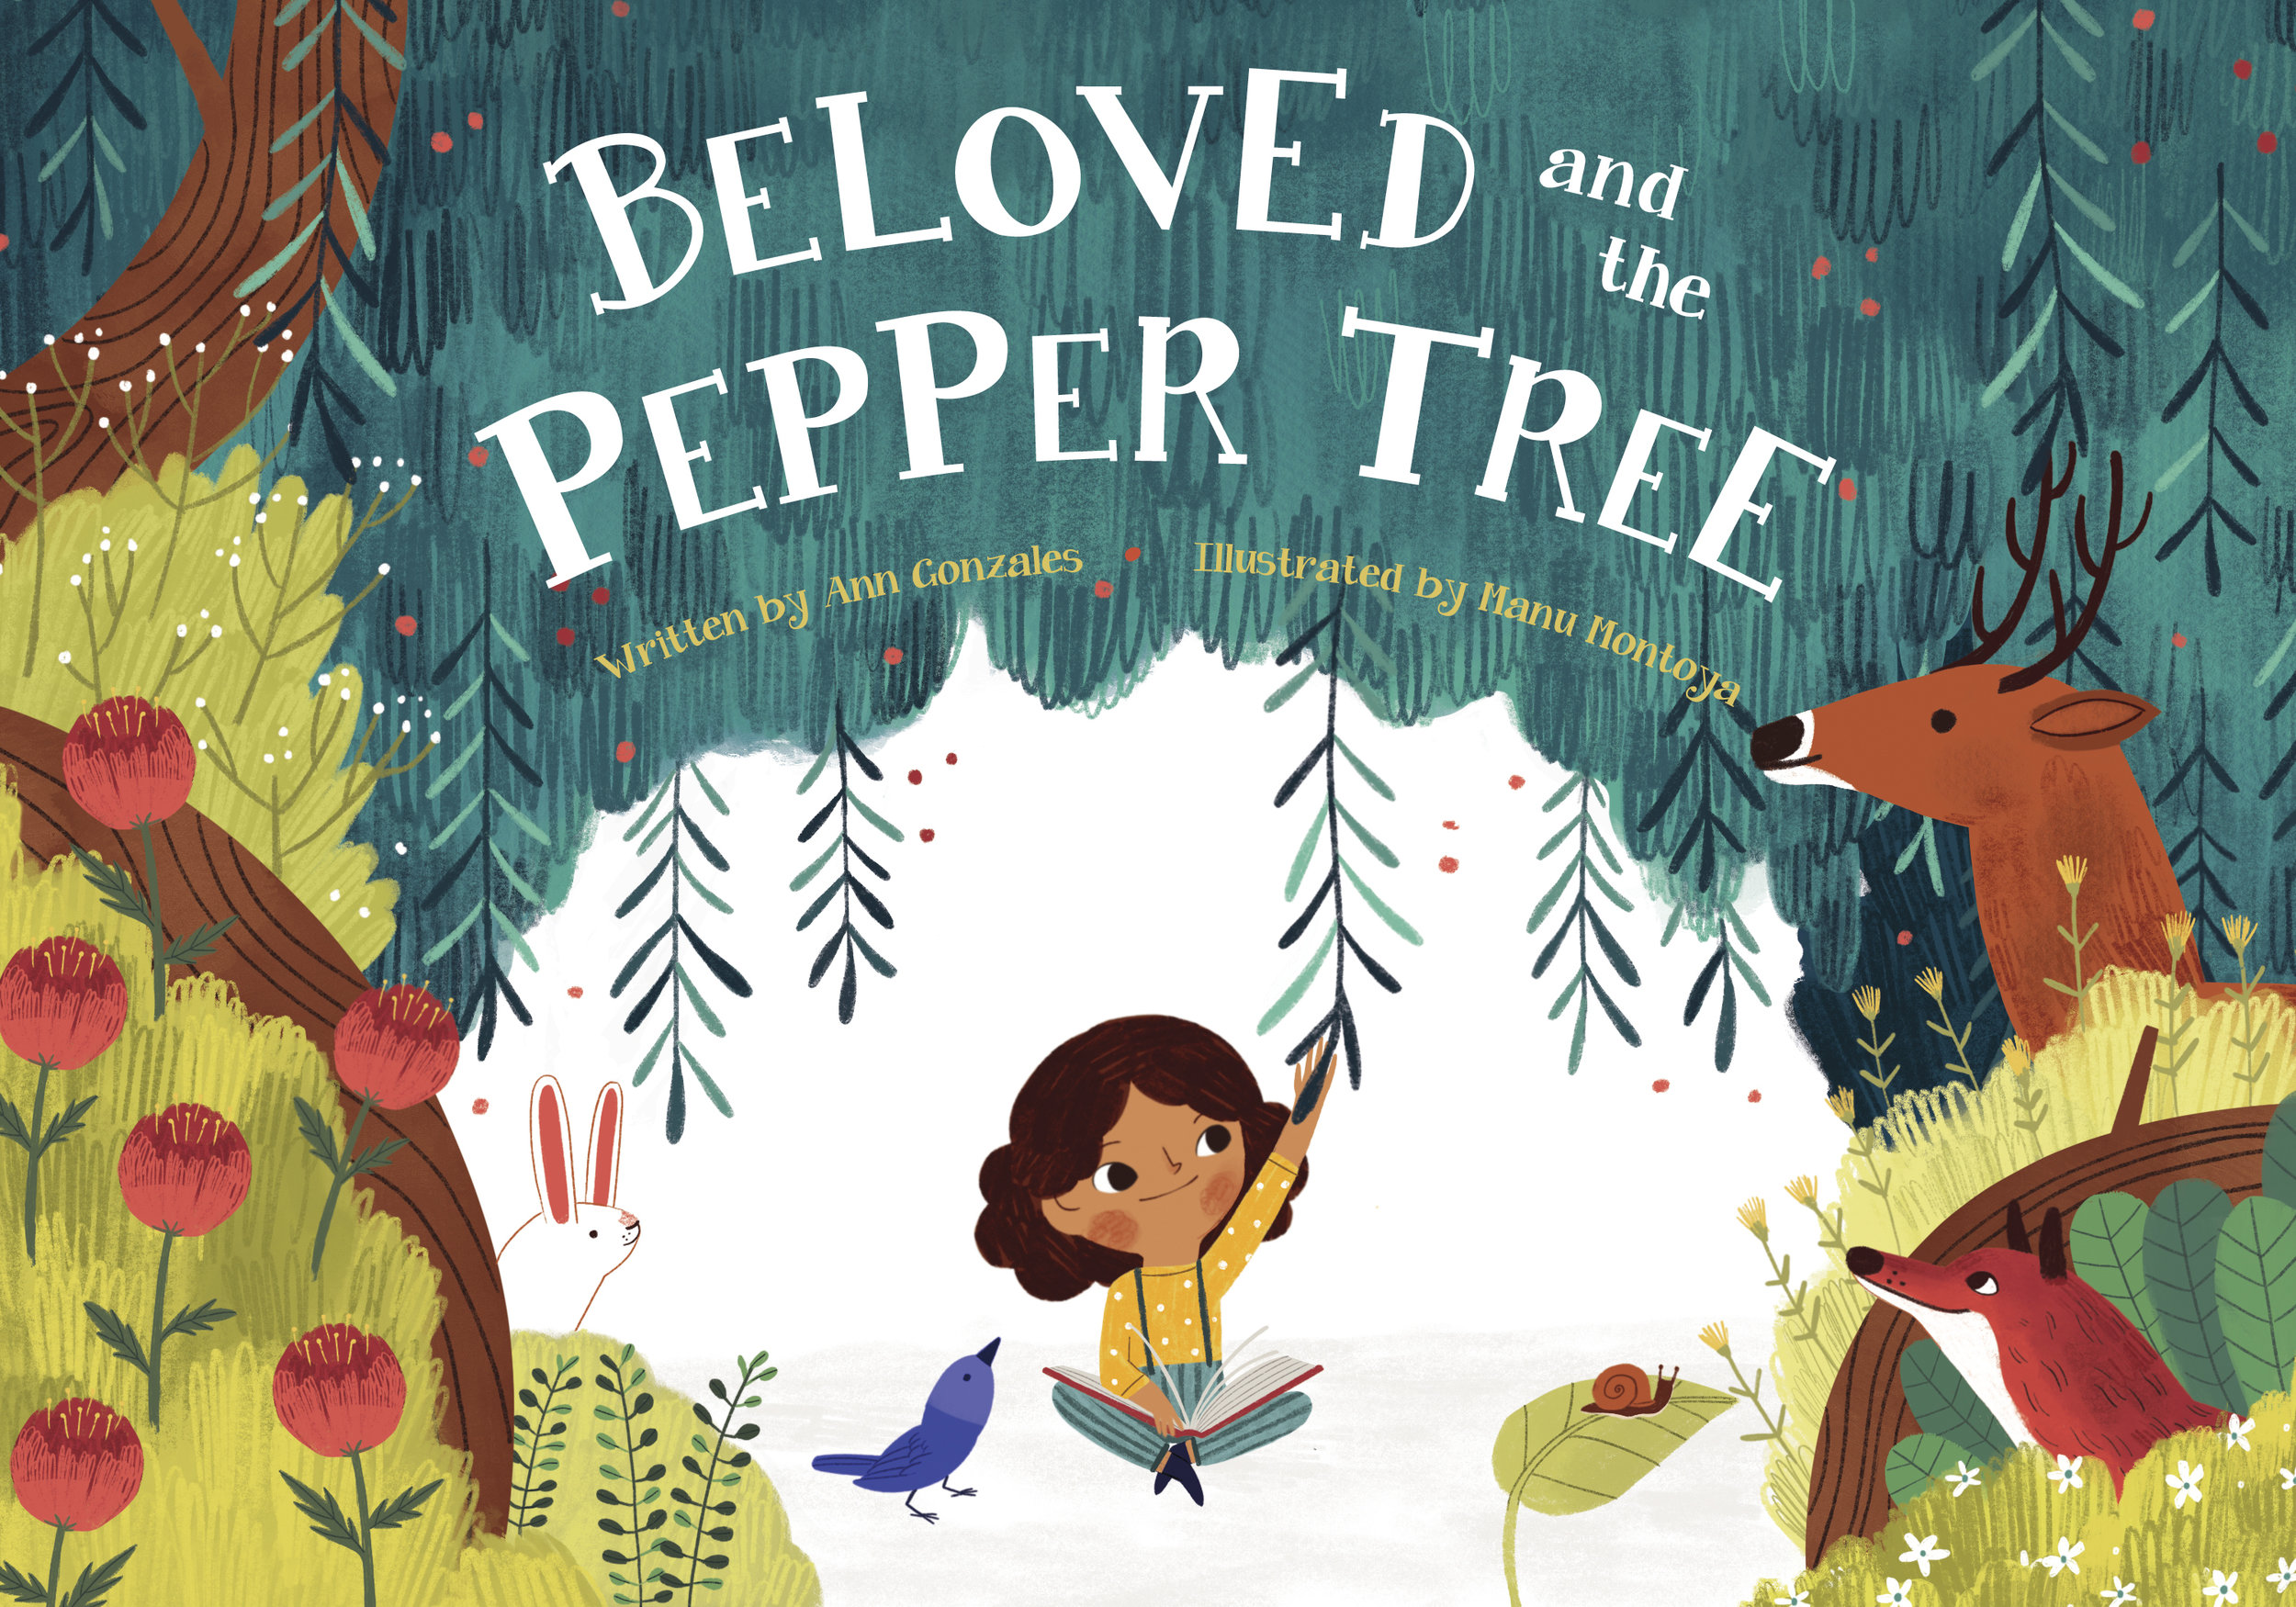 Beloved and the pepper tree - The new children's book by Ann Gonzales is now available for pre-order.